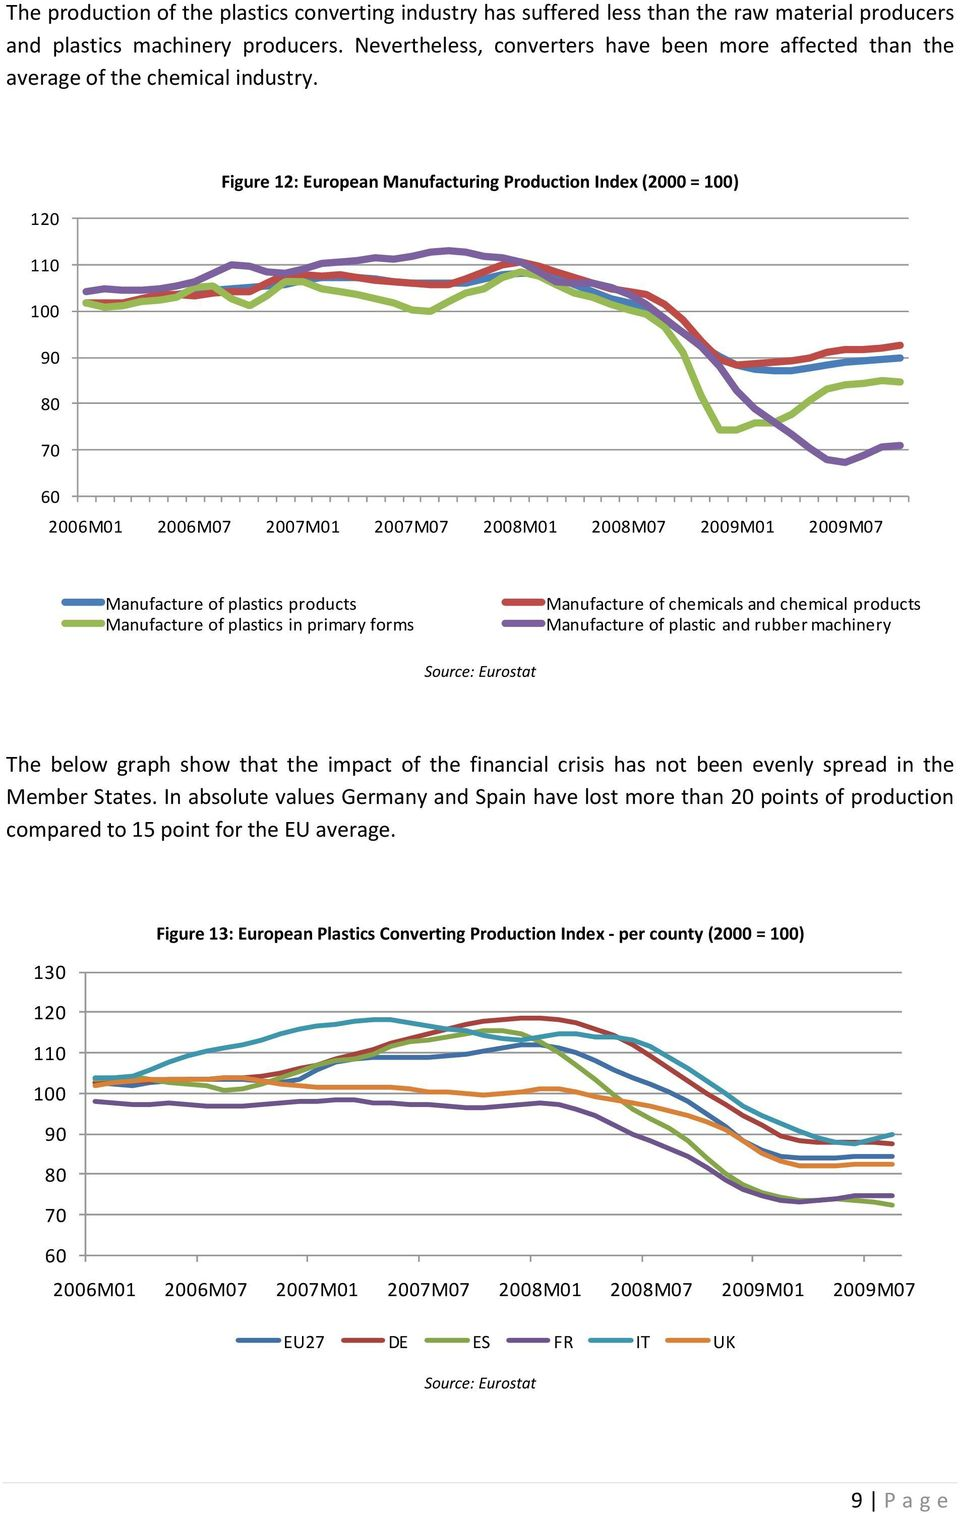 Figure 12: European Manufacturing Production Index (2000 = 100) 120 110 100 90 80 70 60 2006M01 2006M07 2007M01 2007M07 2008M01 2008M07 2009M01 2009M07 Manufacture of plastics products Manufacture of